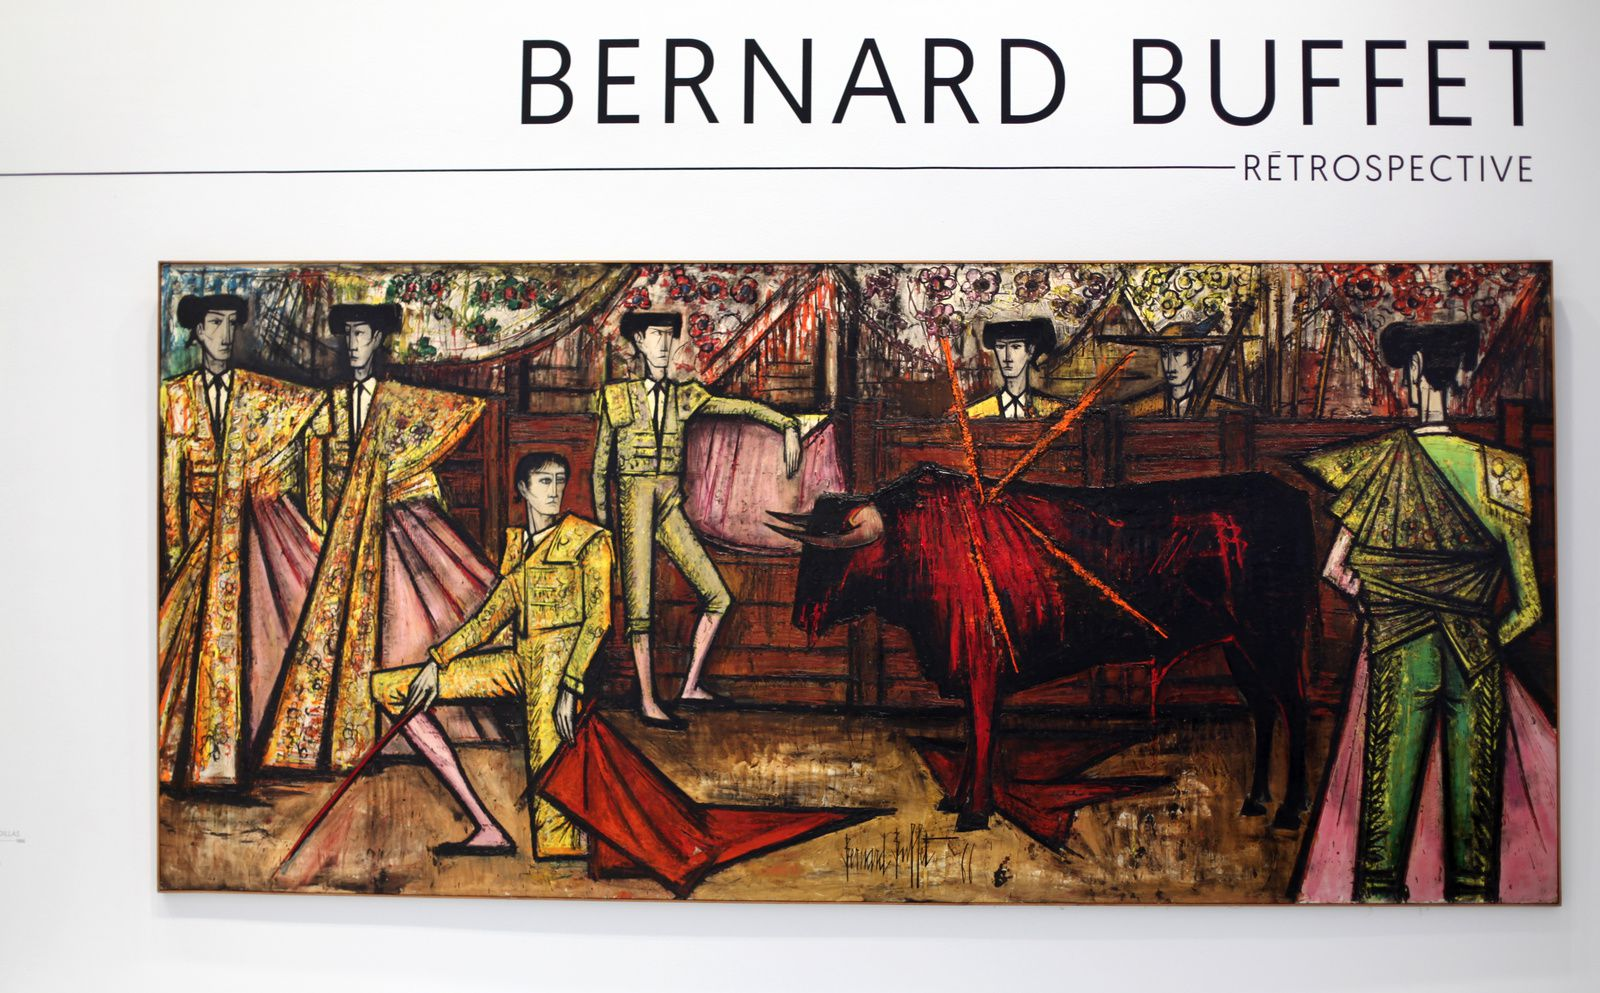 """La Corrida, Desplante de Rodillas"", 1966 de Bernard BUFFET - Courtesy Fonds de dotation B. Buffet © Photo Éric Simon"